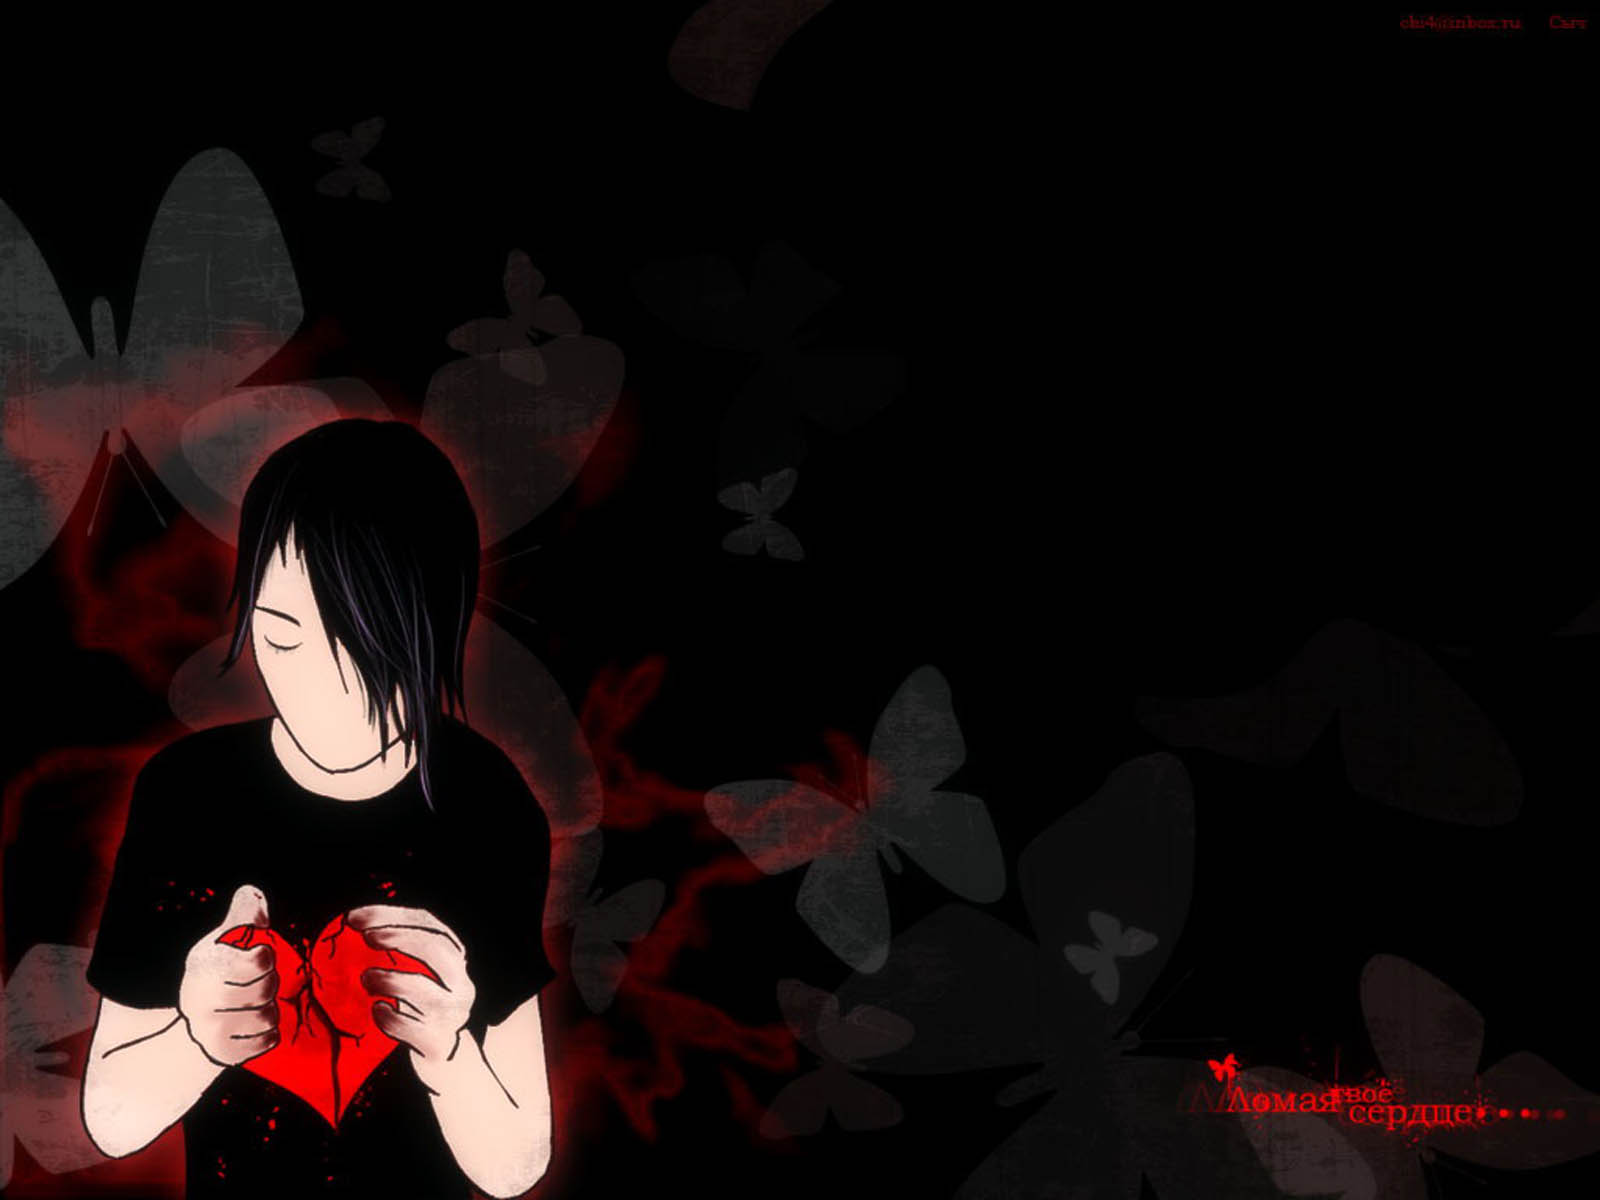 Emo Heart Wallpaper Emo Wallpapers of Emo Boys and Girls 1600x1200